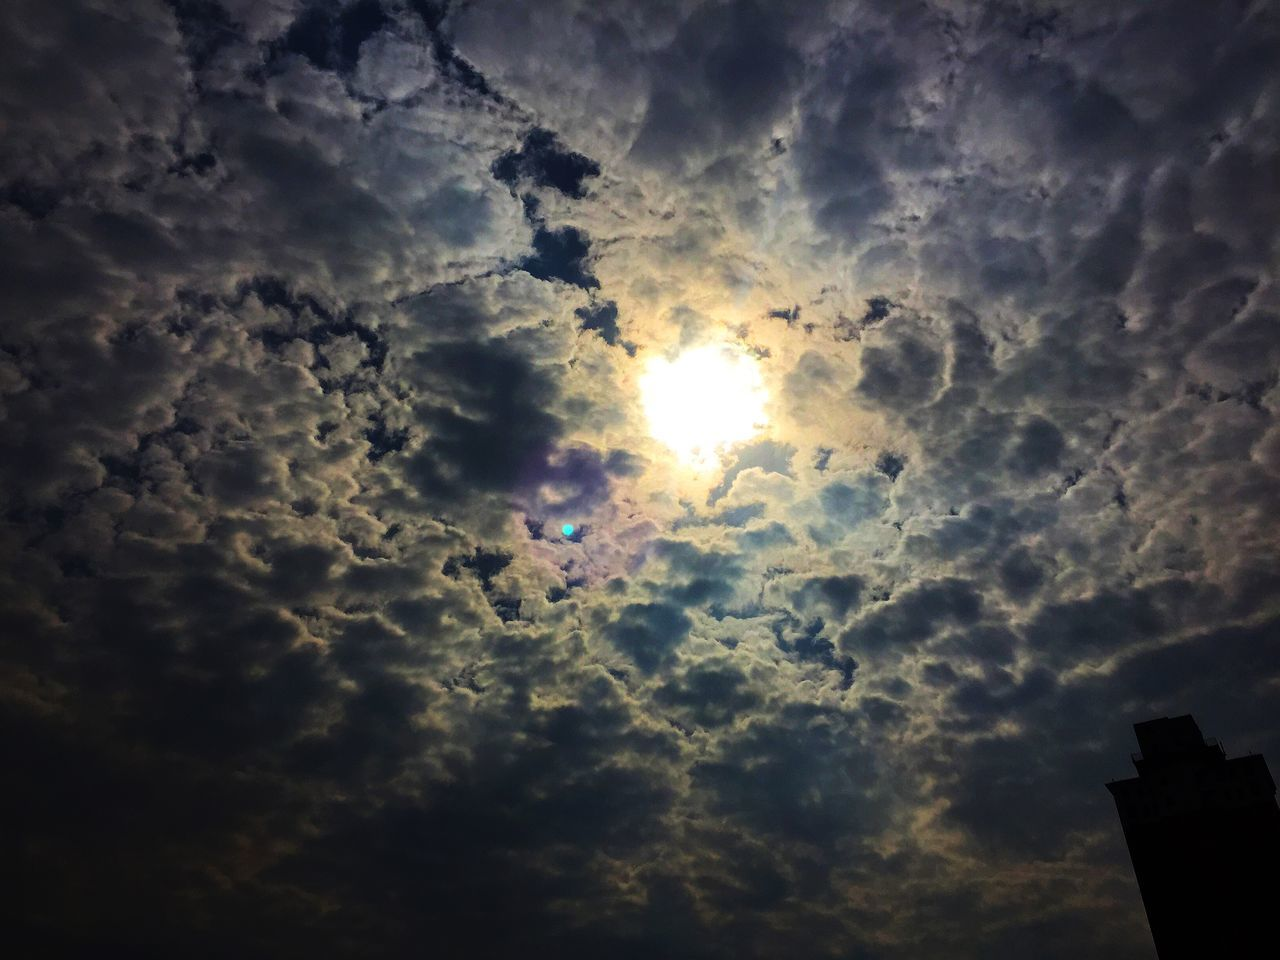 cloud - sky, sunset, sun, sky, sunbeam, silhouette, low angle view, dramatic sky, nature, sunlight, beauty in nature, outdoors, no people, storm cloud, scenics, day